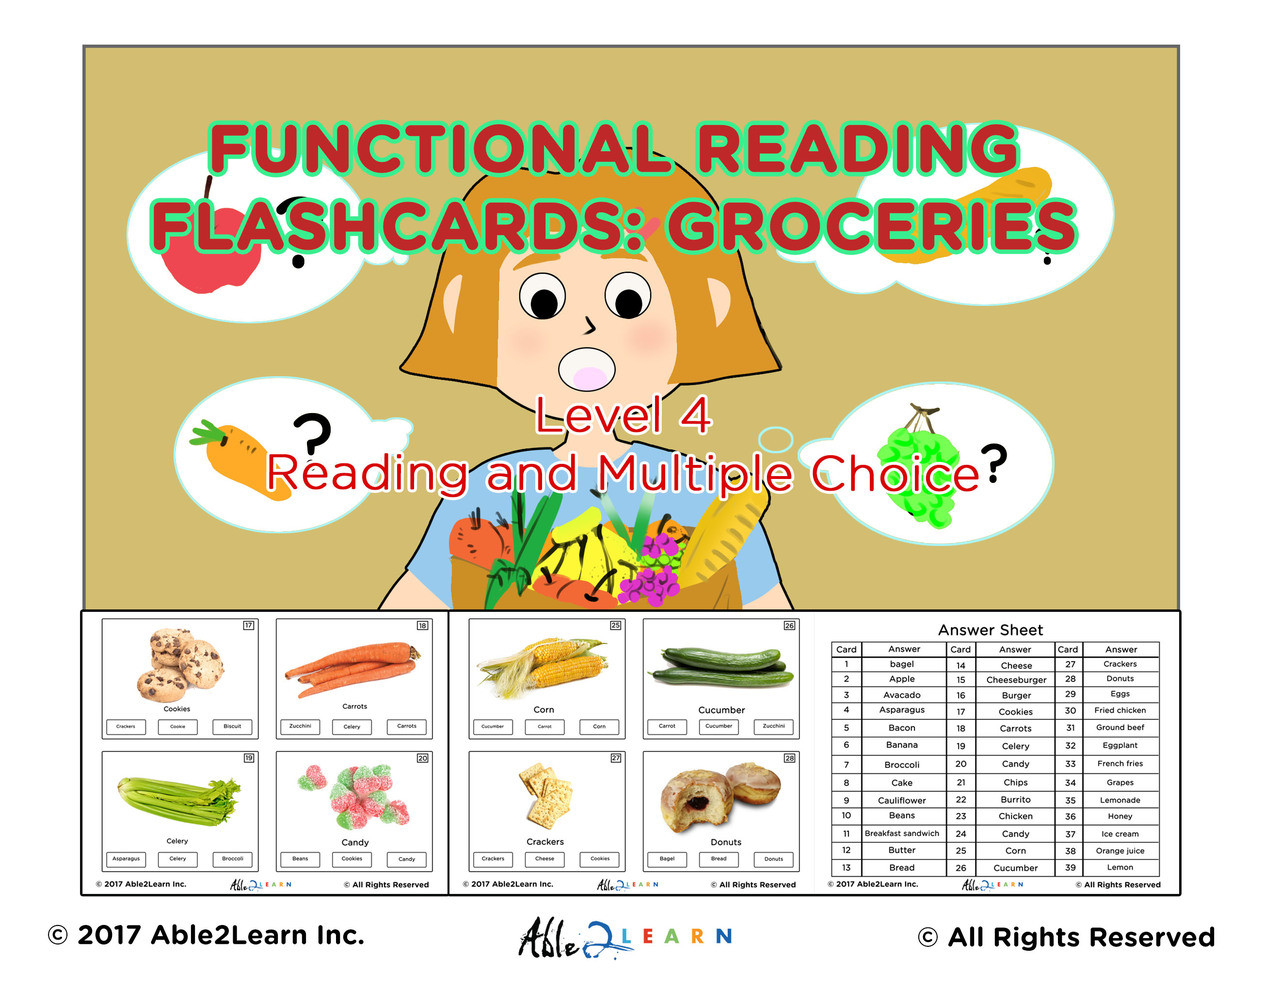 Life Skills Reading Grocery Flashcards Free Aba Resources life skills – Life Skills Worksheets Free